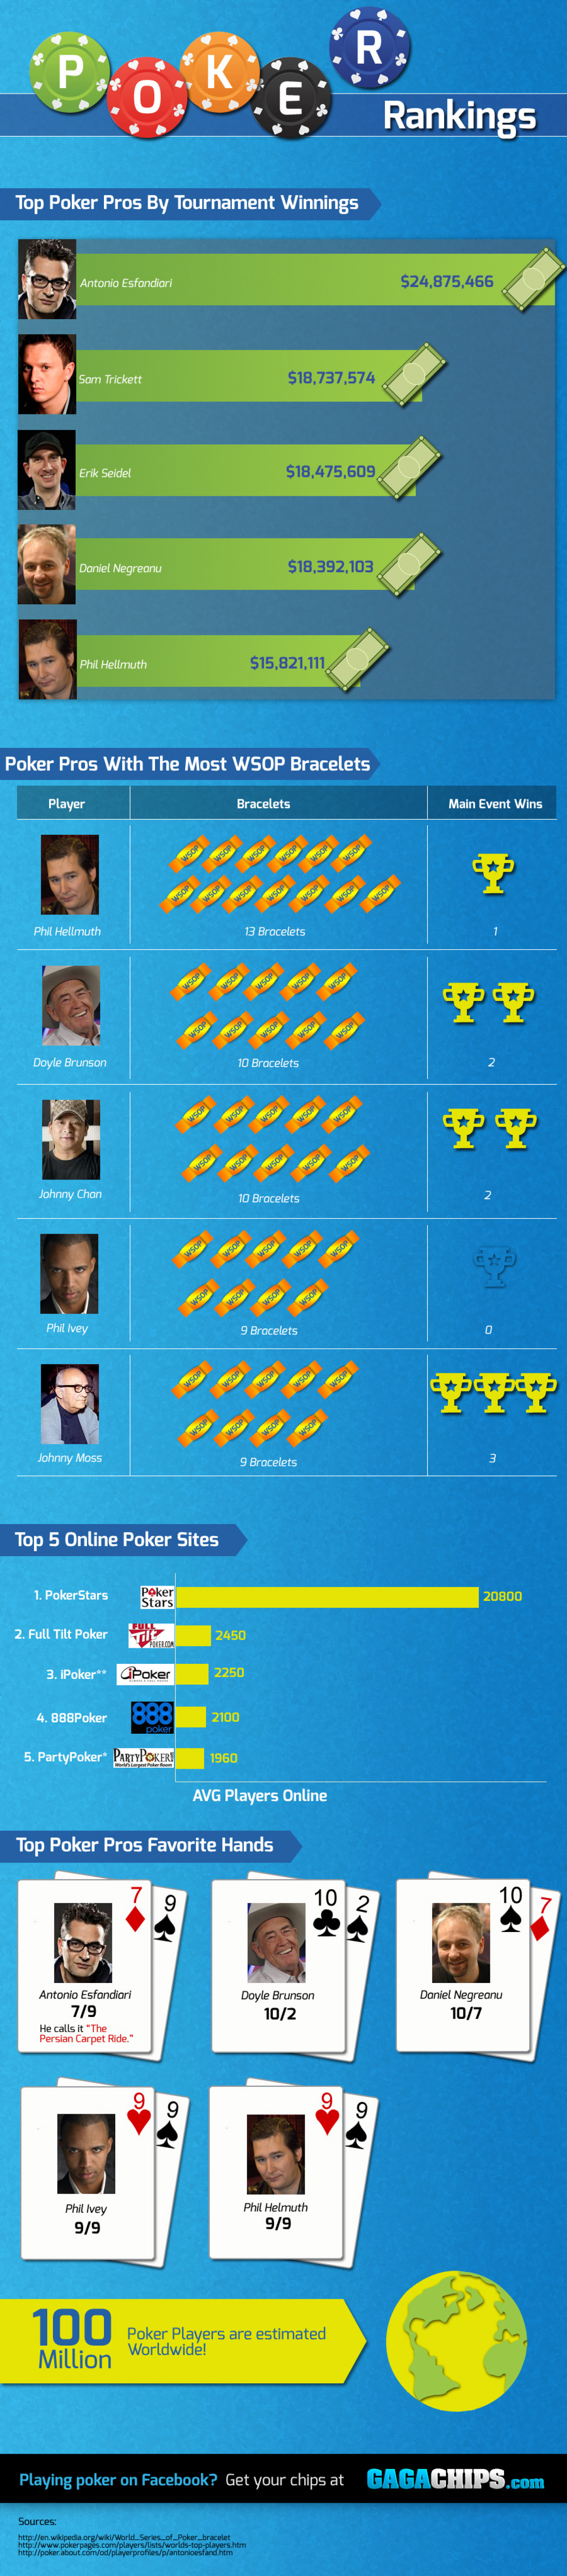 POKER Rankings Infographic